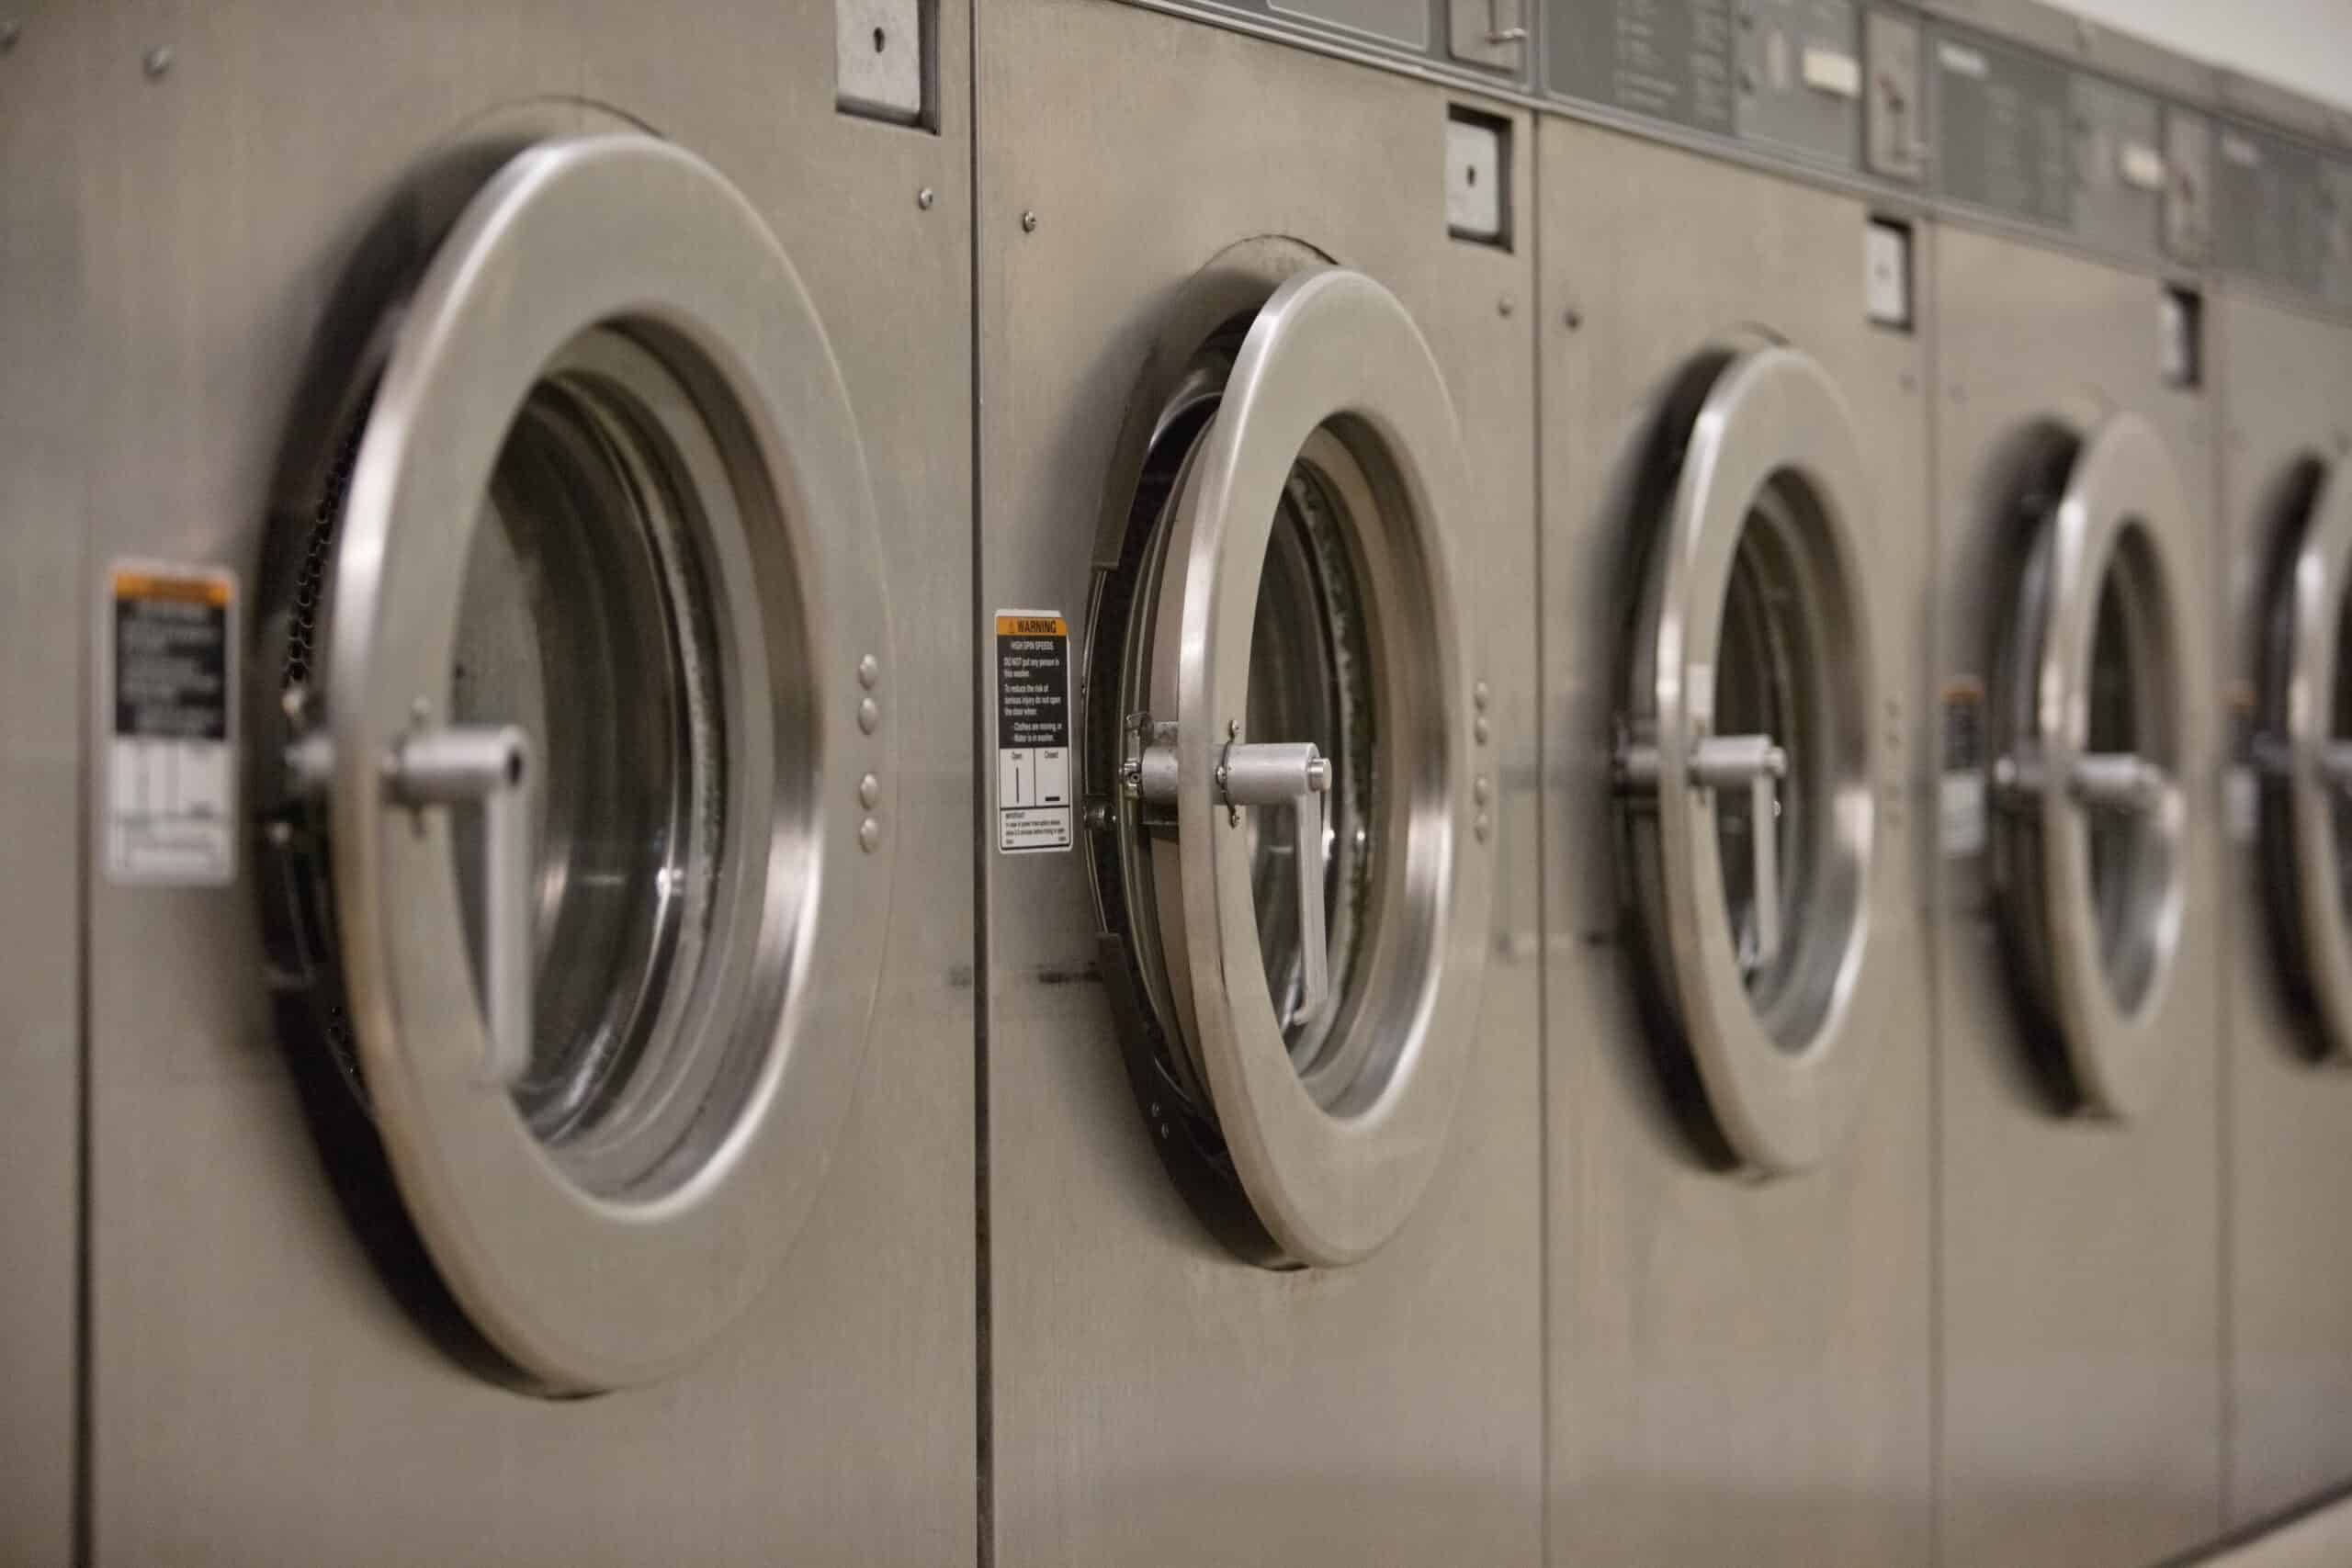 Solving The Mystery of a Dryer That Won't Dry Your Clothes